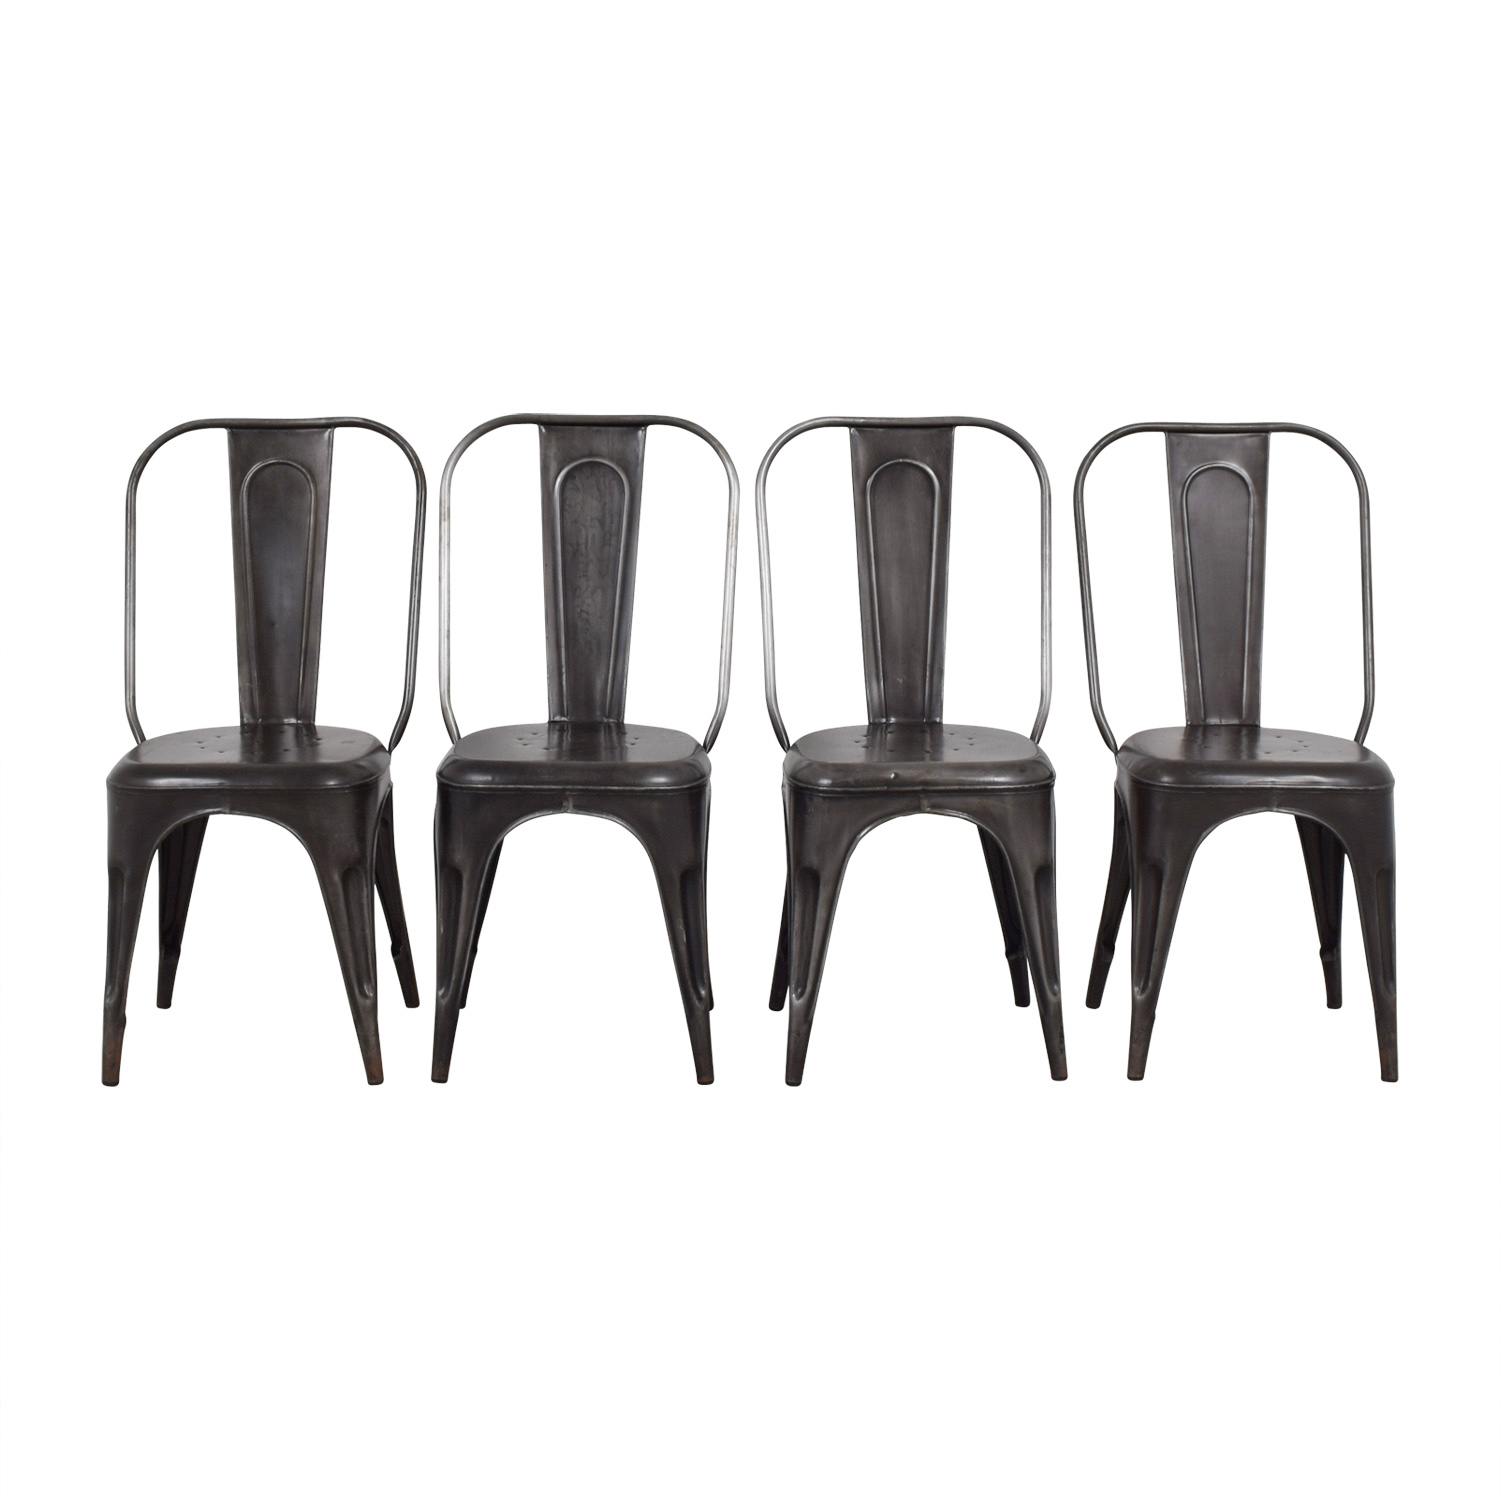 Arhaus Arhaus Bryant Dining Side Chairs Chairs